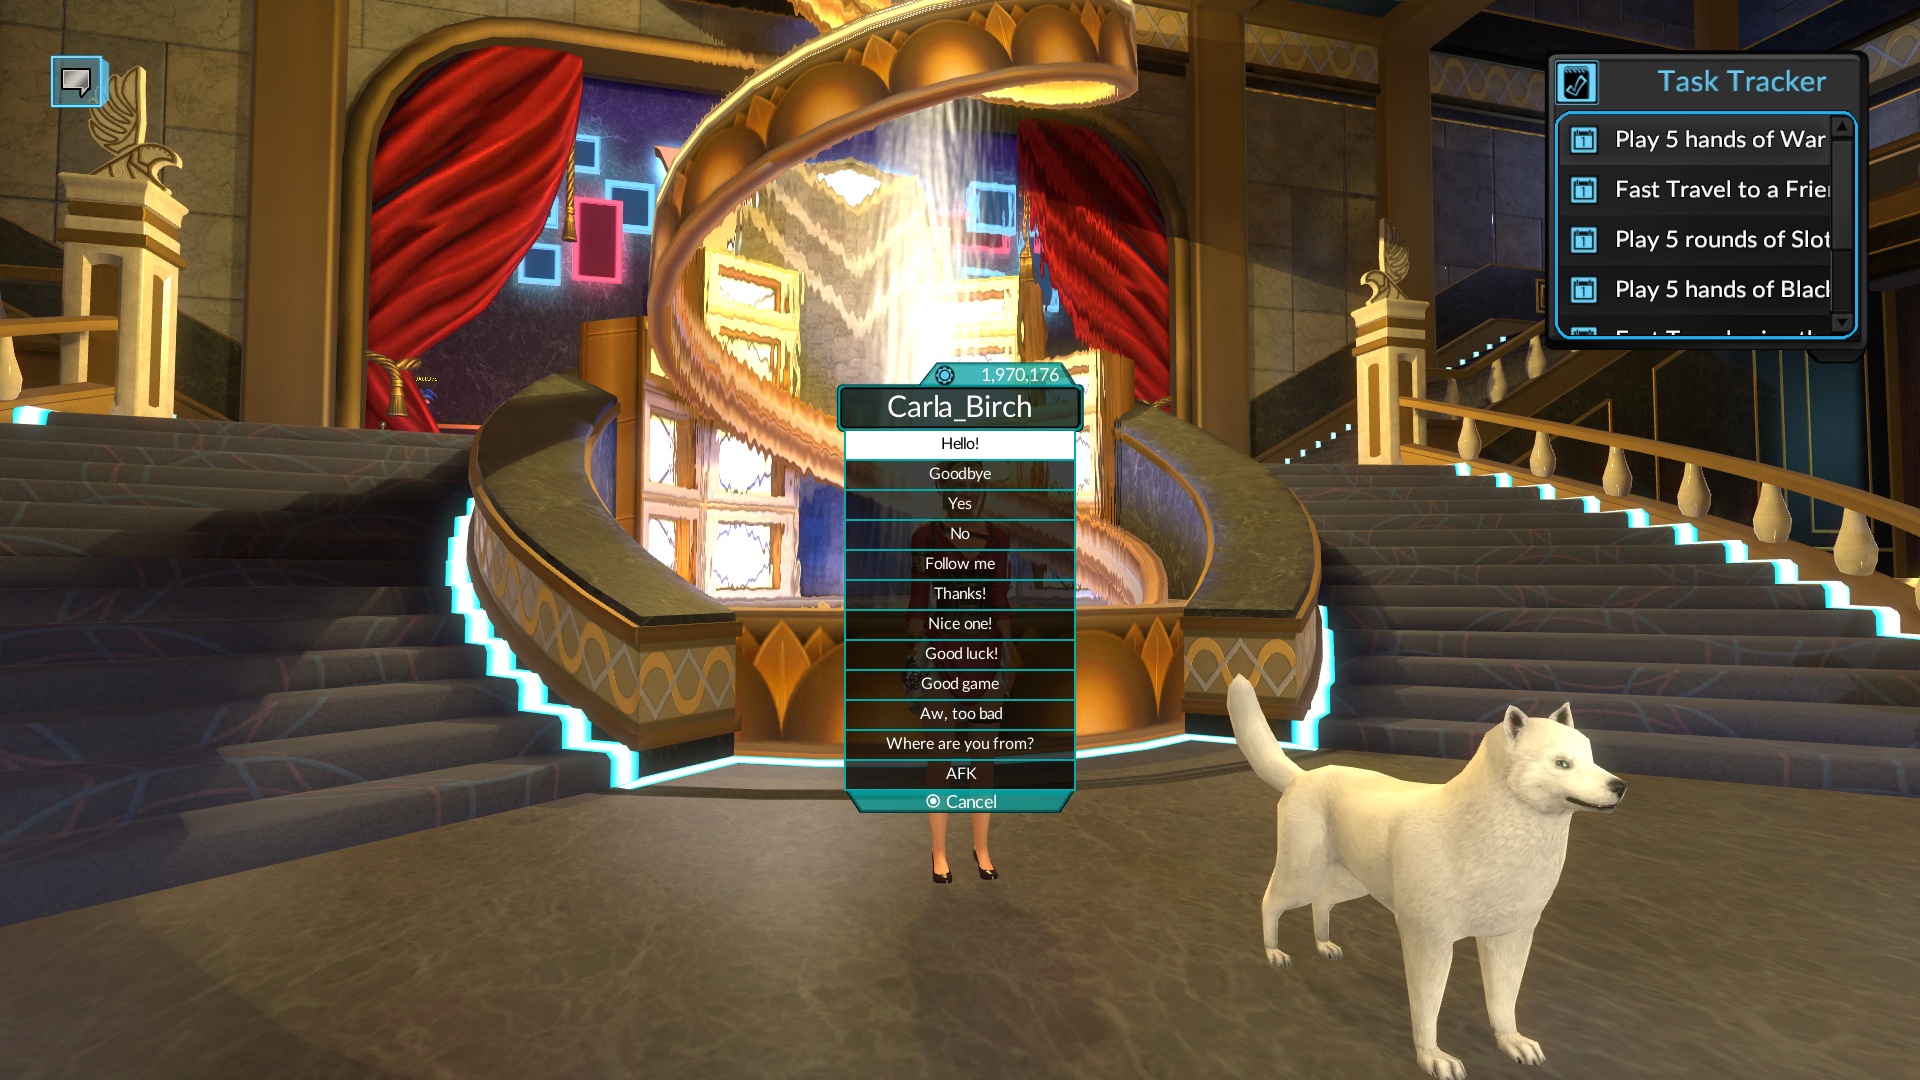 Four Kings Casino & Slots, Feedback/Discussion, C.Birch, Sep 20, 2015, 9:04 AM, YourPSHome.net, png, 260430_2015-09-20_00002.png